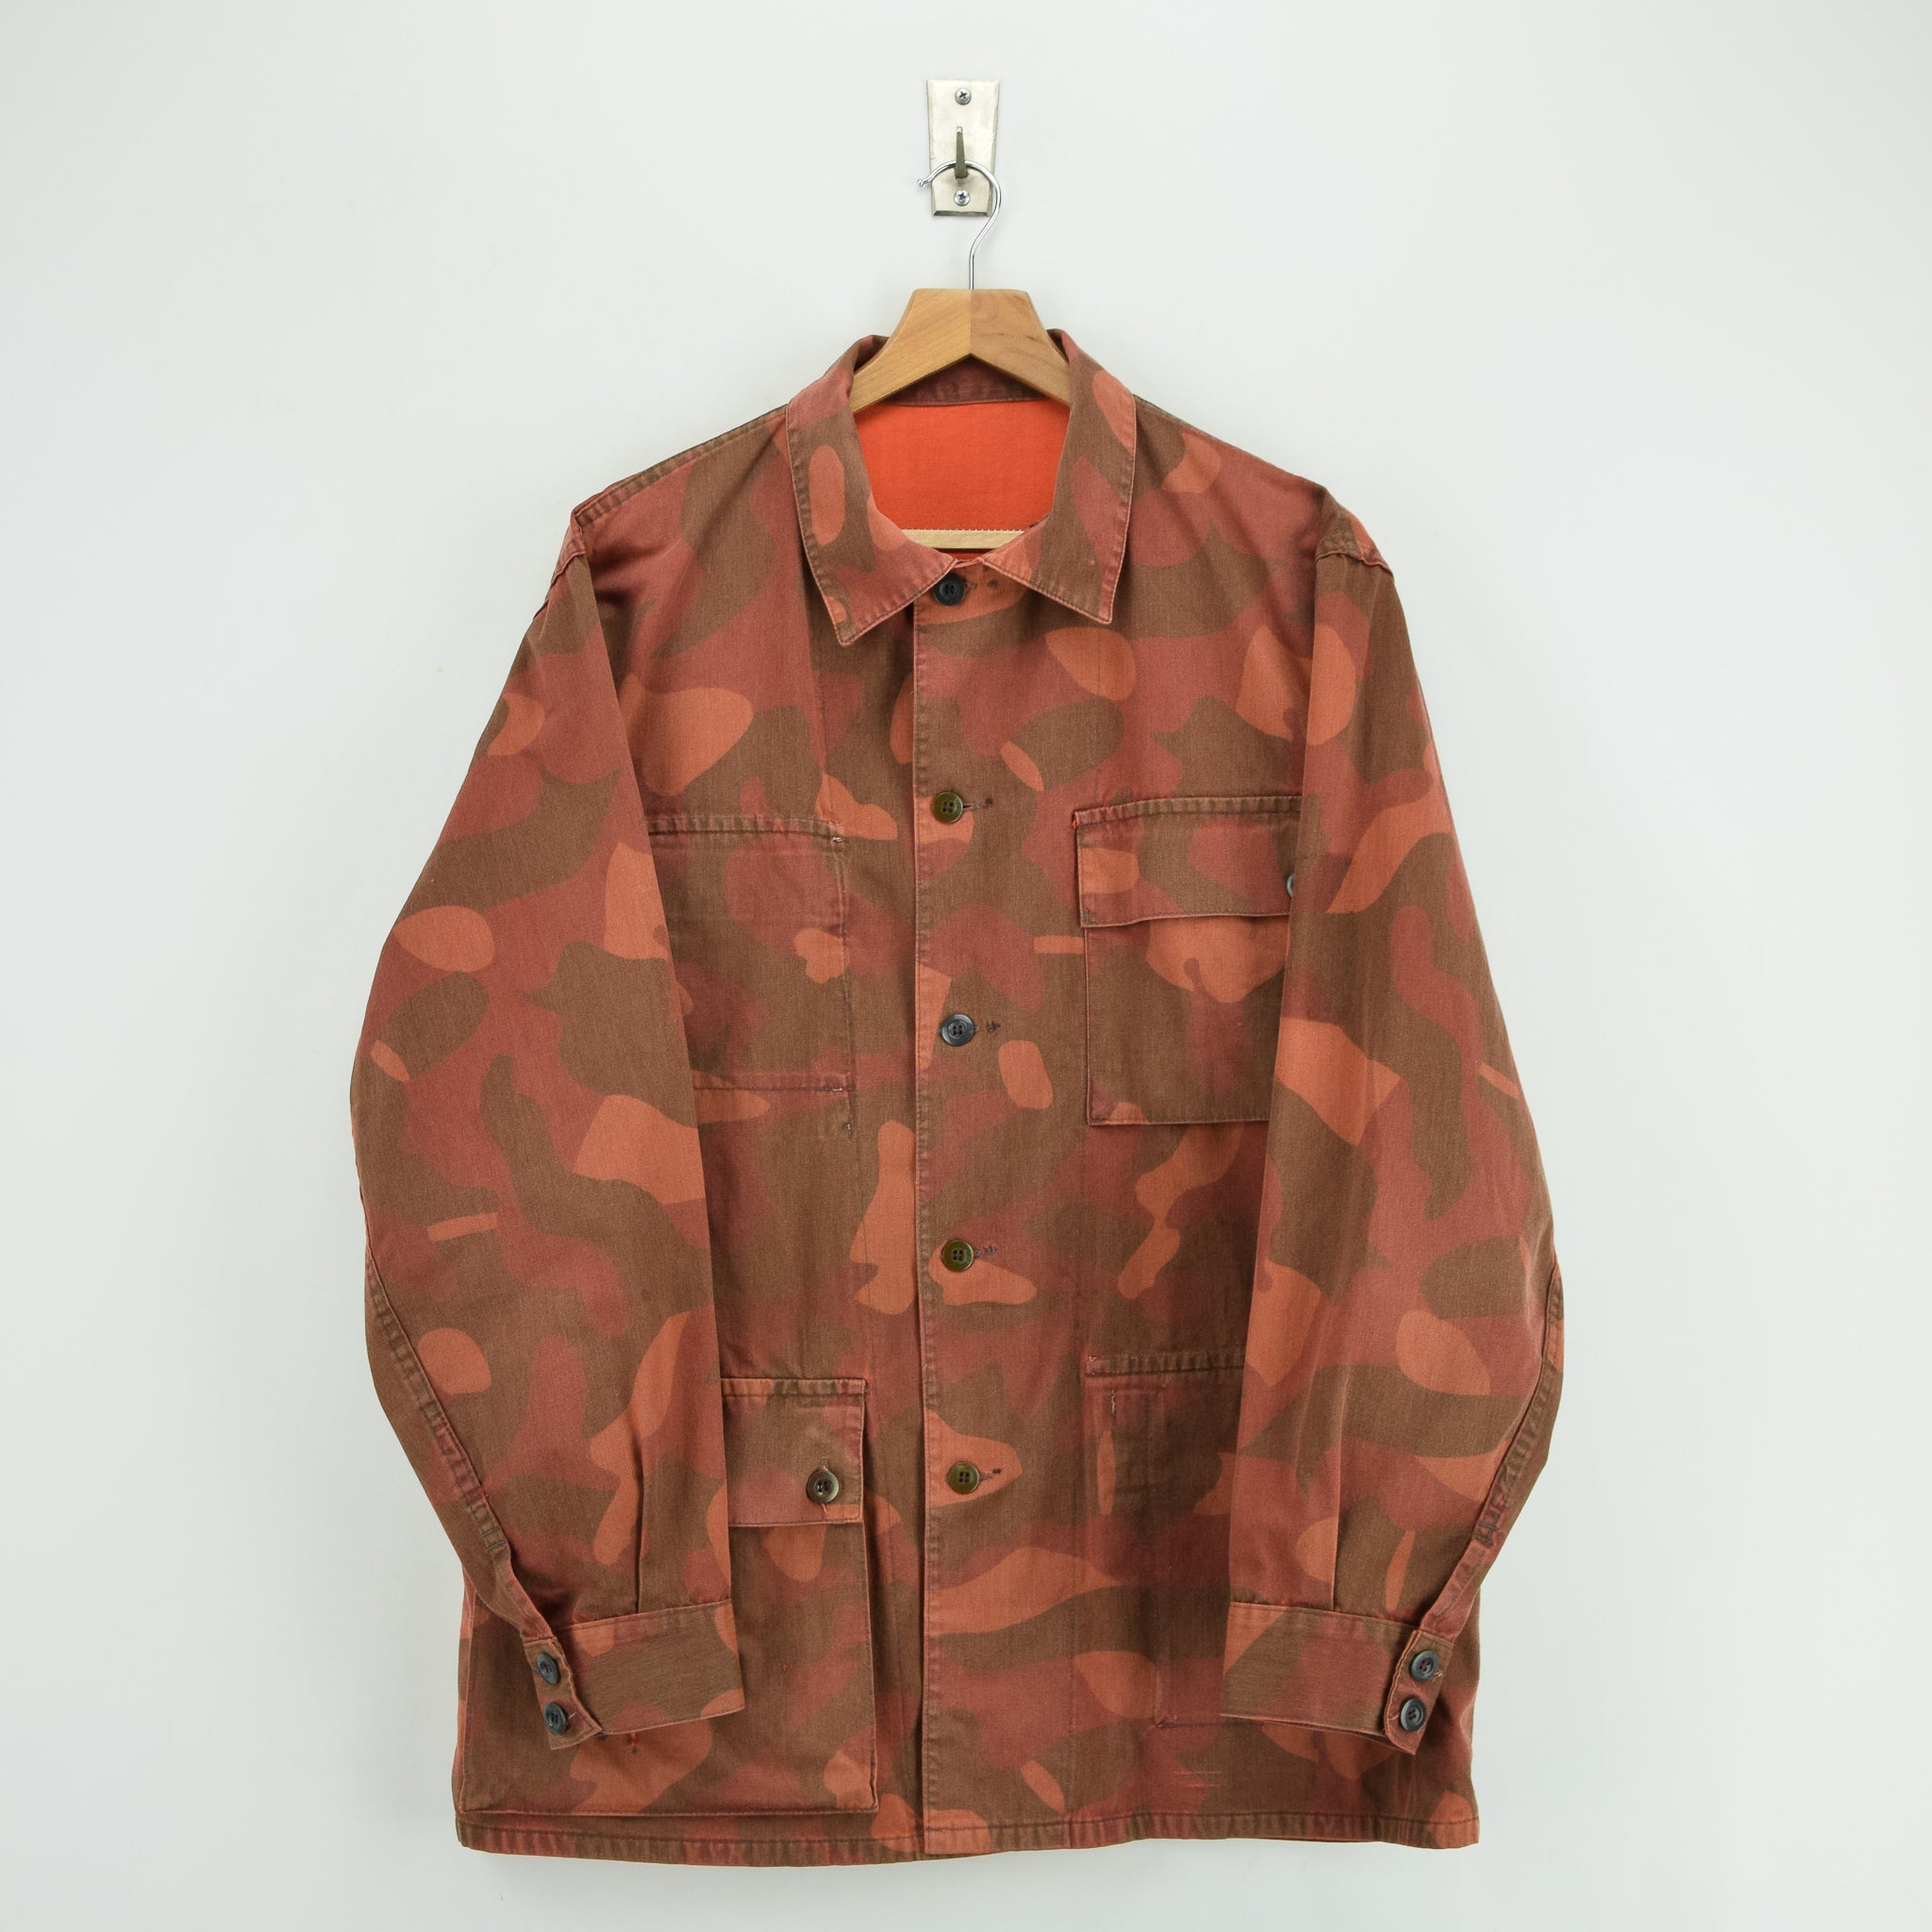 Vintage 80s Military Finnish Army Orange Overdyed Camo Mountain Field Jacket L front